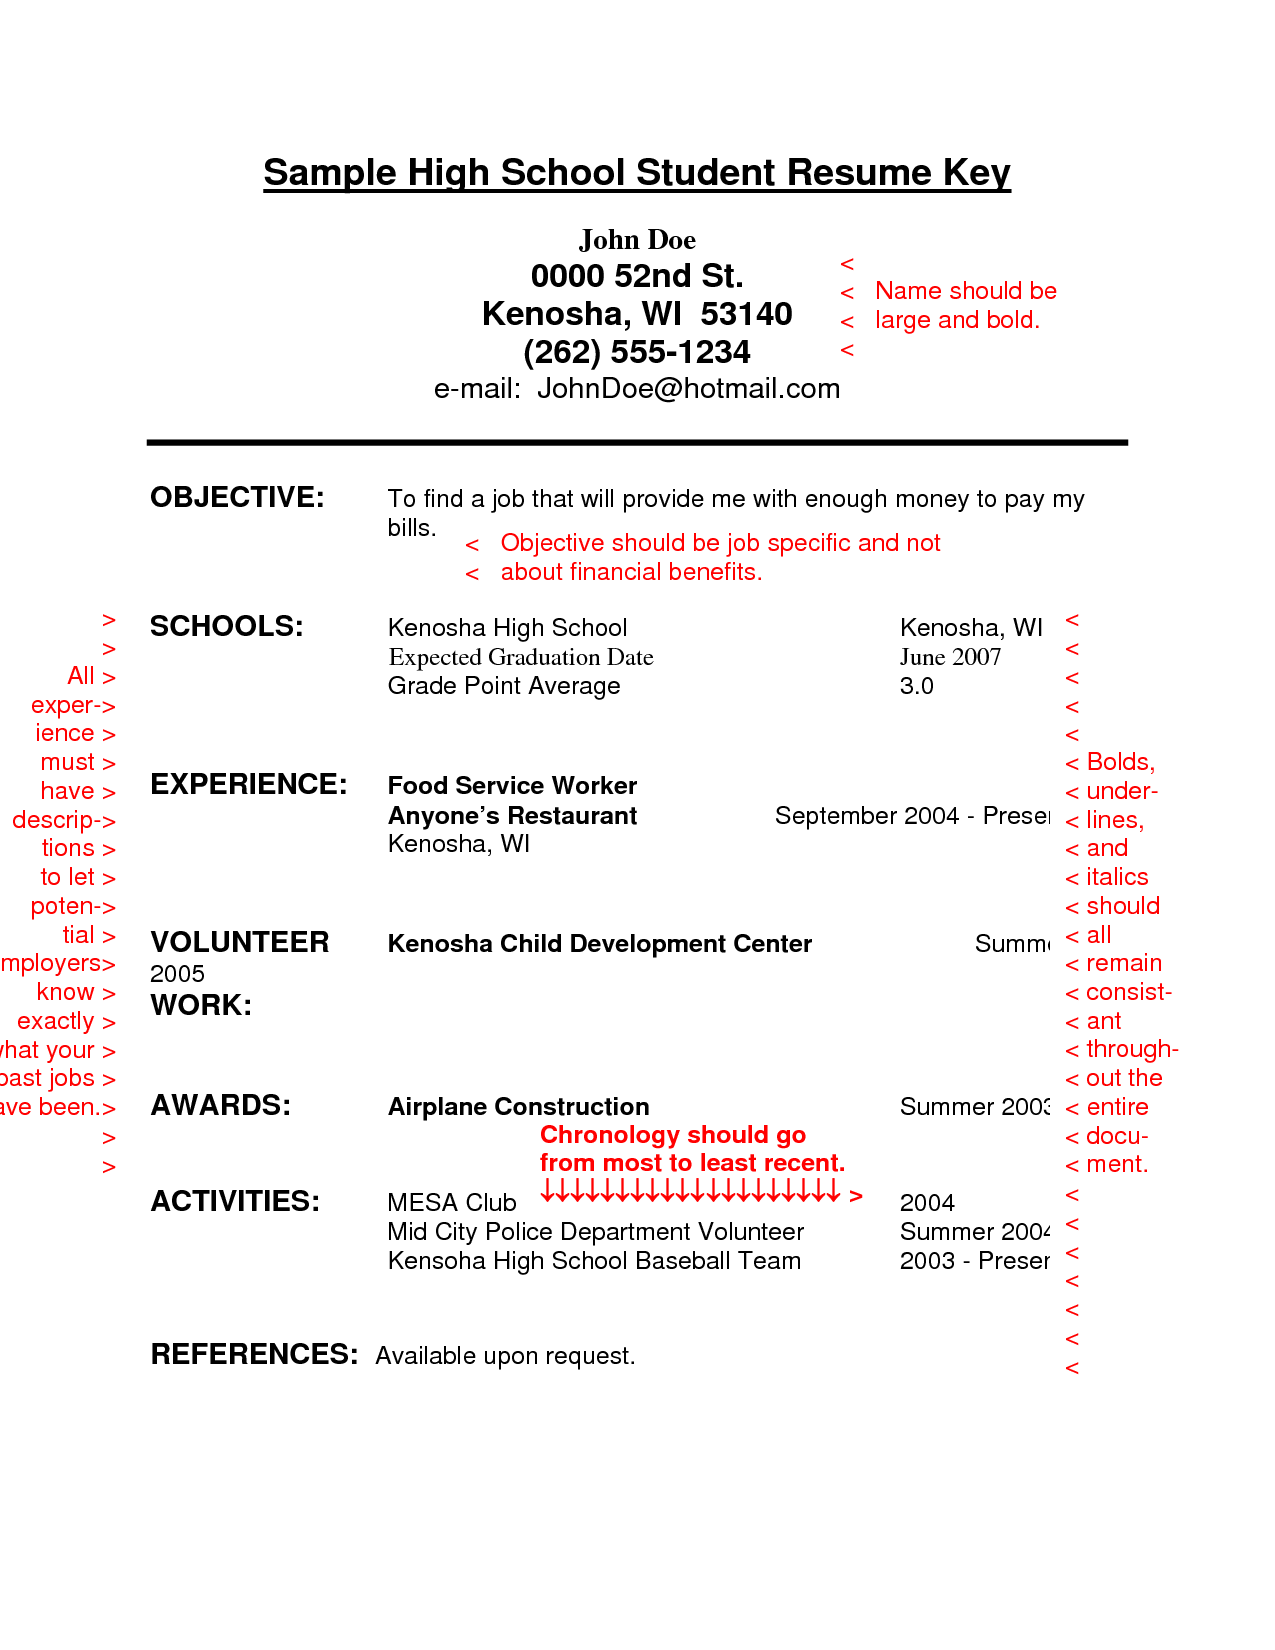 Resume For A Highschool Student High School Student Resume Example Resume Template Builder